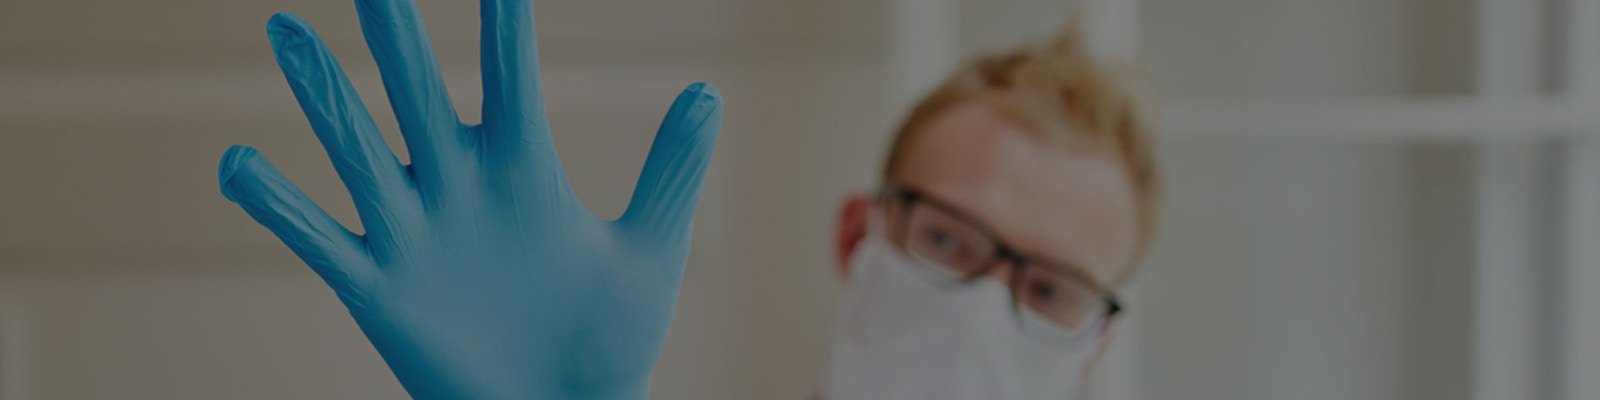 MedCart Disposable Glove Products